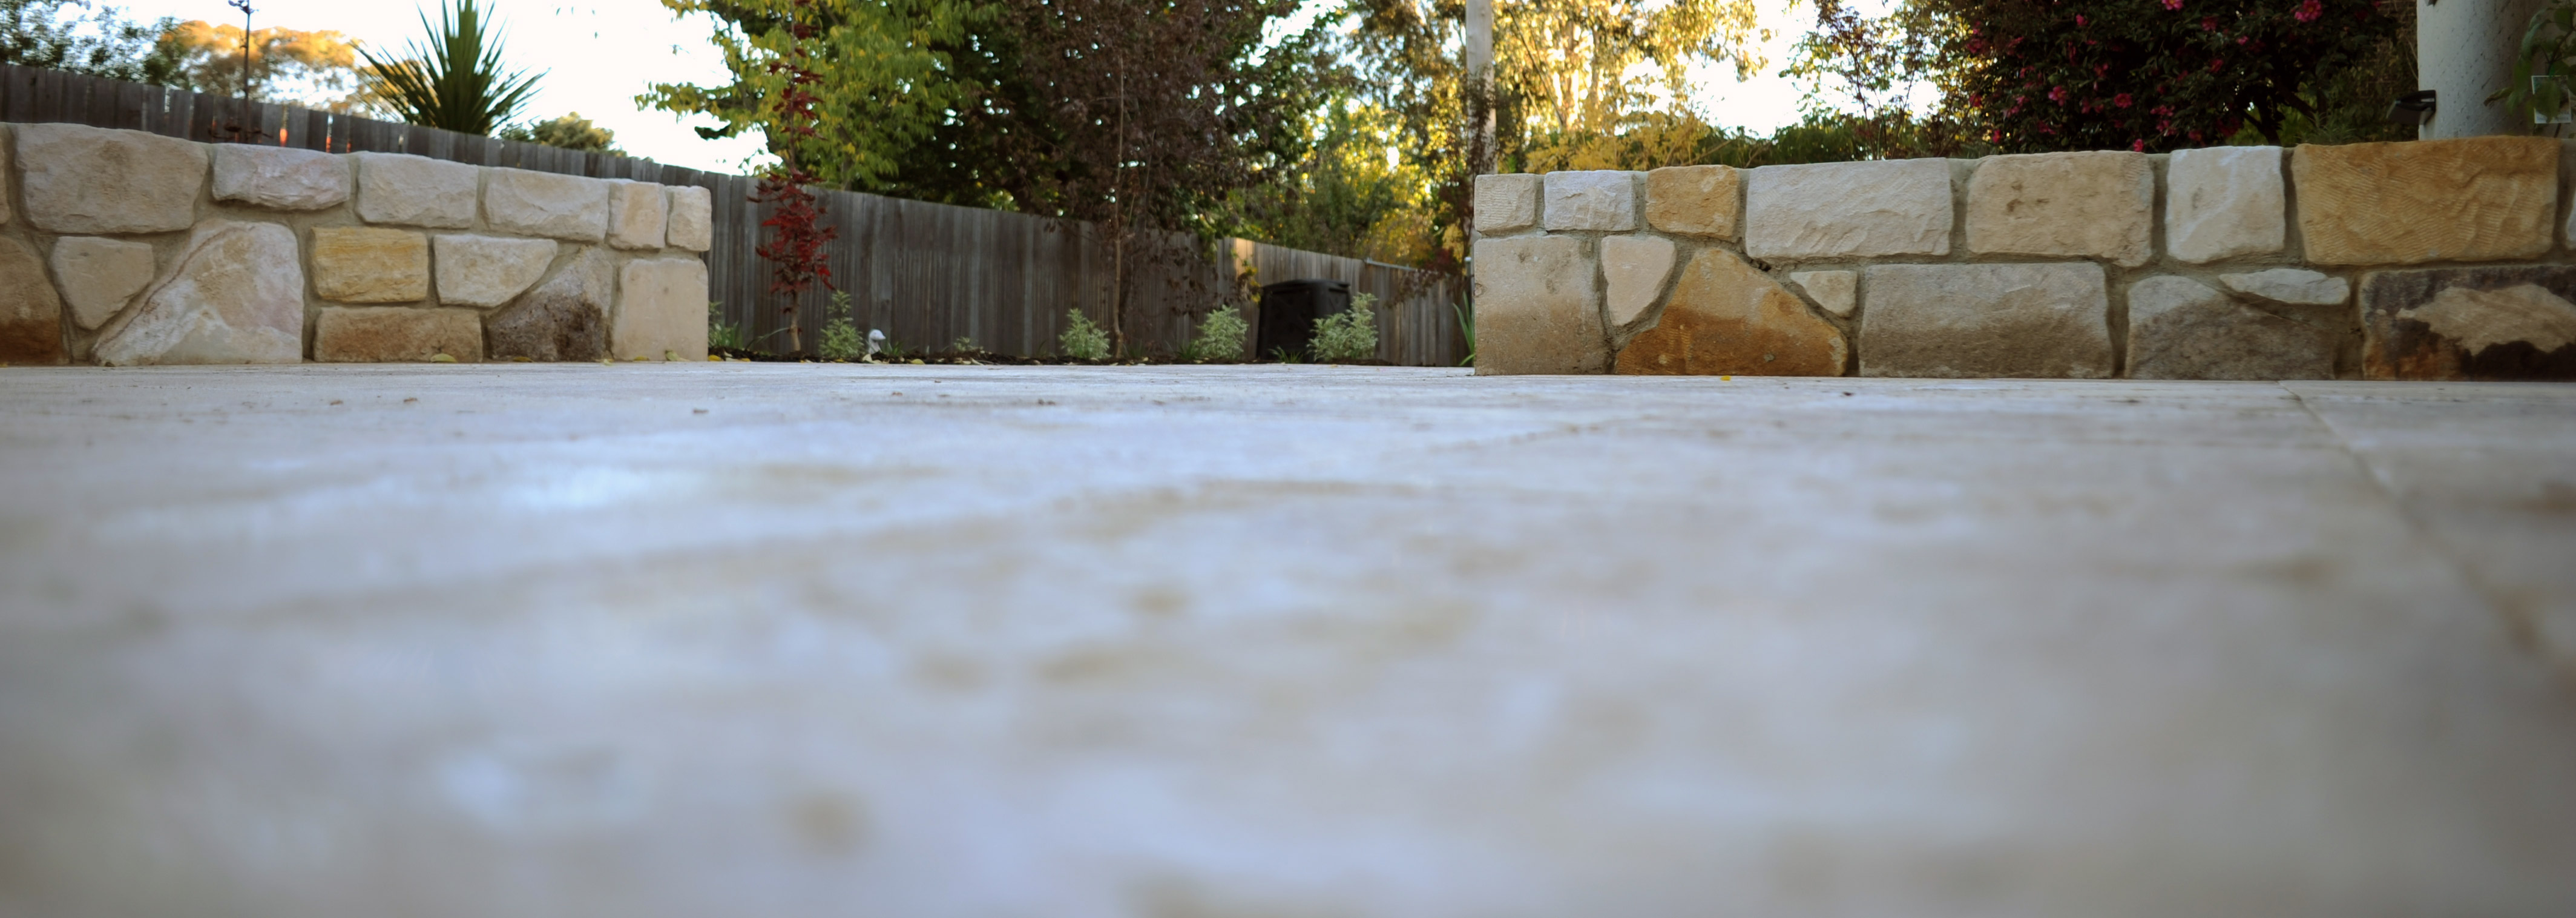 Bromell Circuit, ACT. Close-up of the new pavers and stone walls in the background